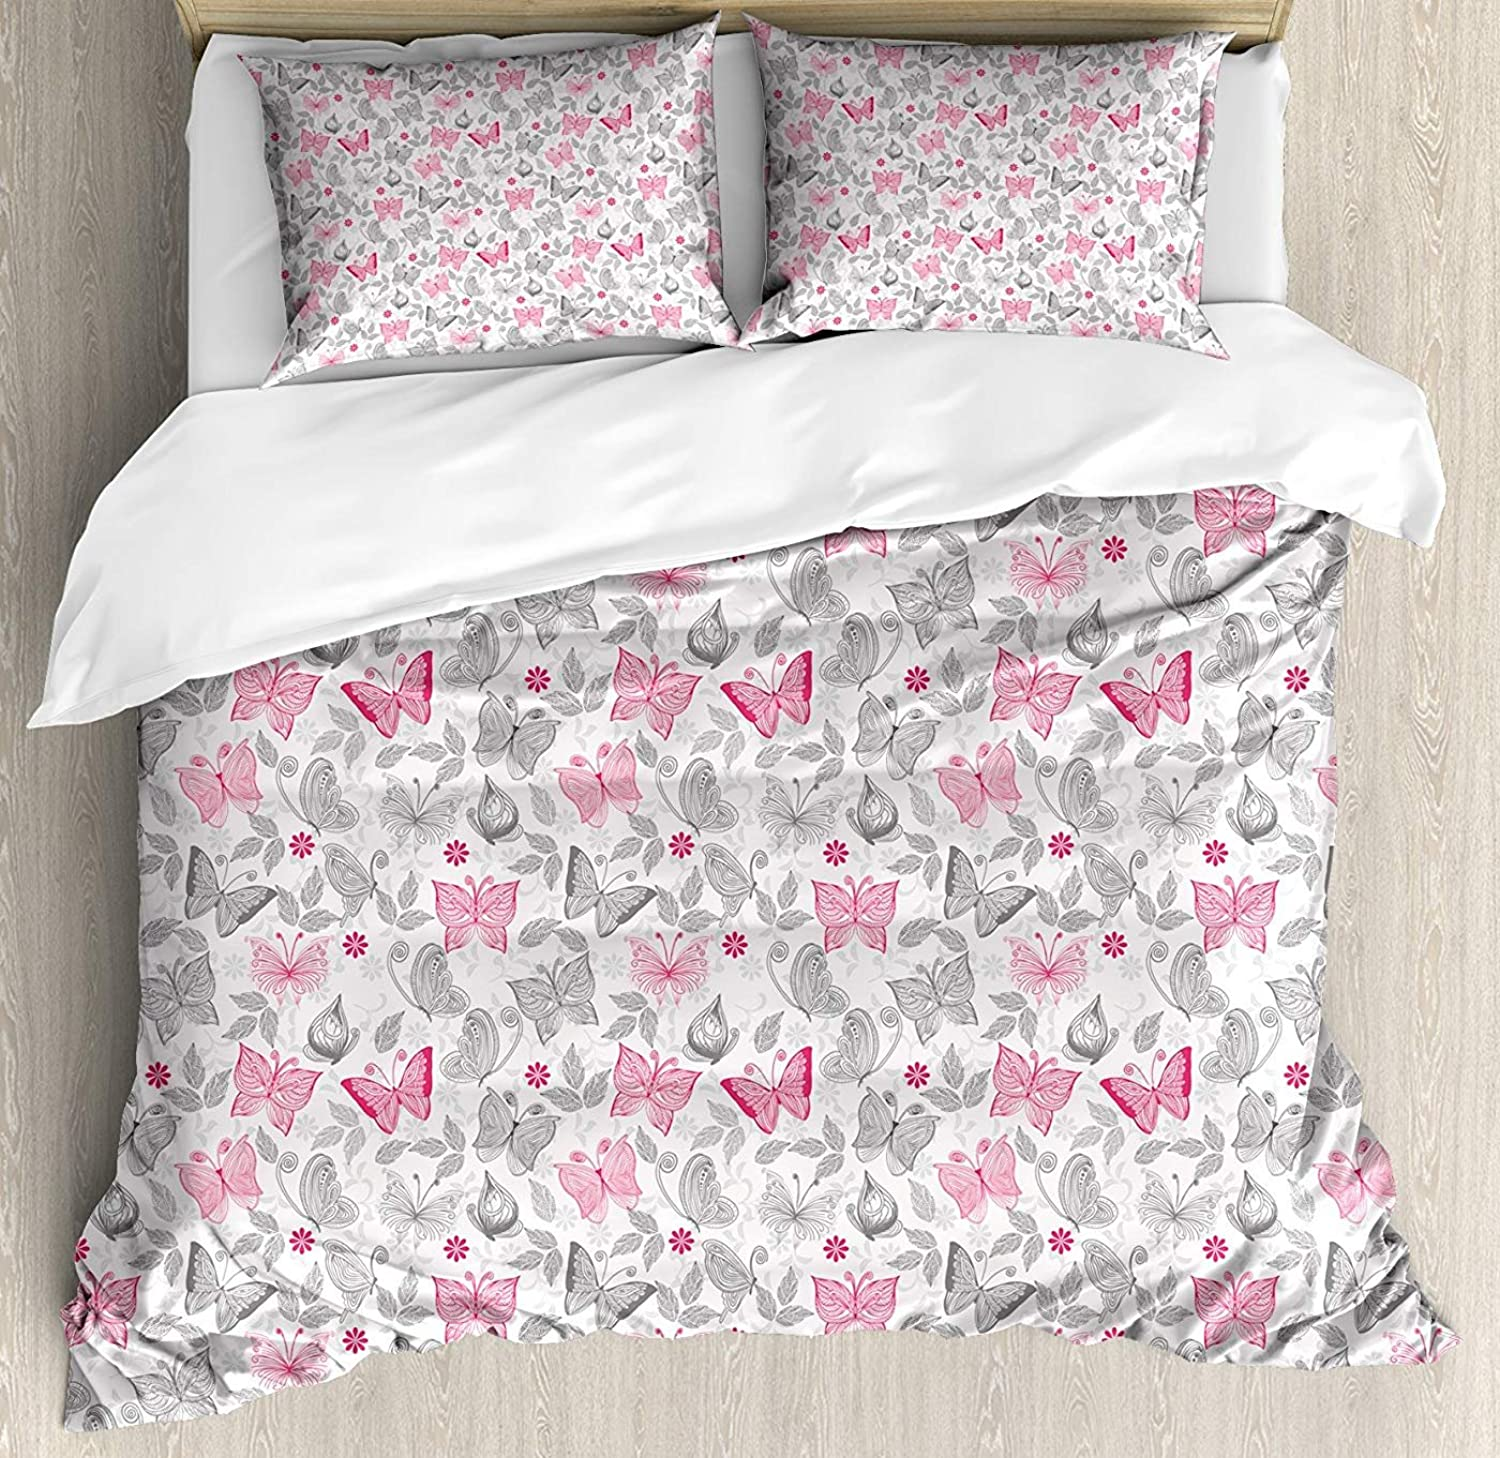 Fandim Fly Butterfly Bedding Set Twin Size, Sketch Style Animals Leaves Abstract Nature Depiction Romantic Swirls Lines,Comforter Cover Sets for All Season, Grey Pink White